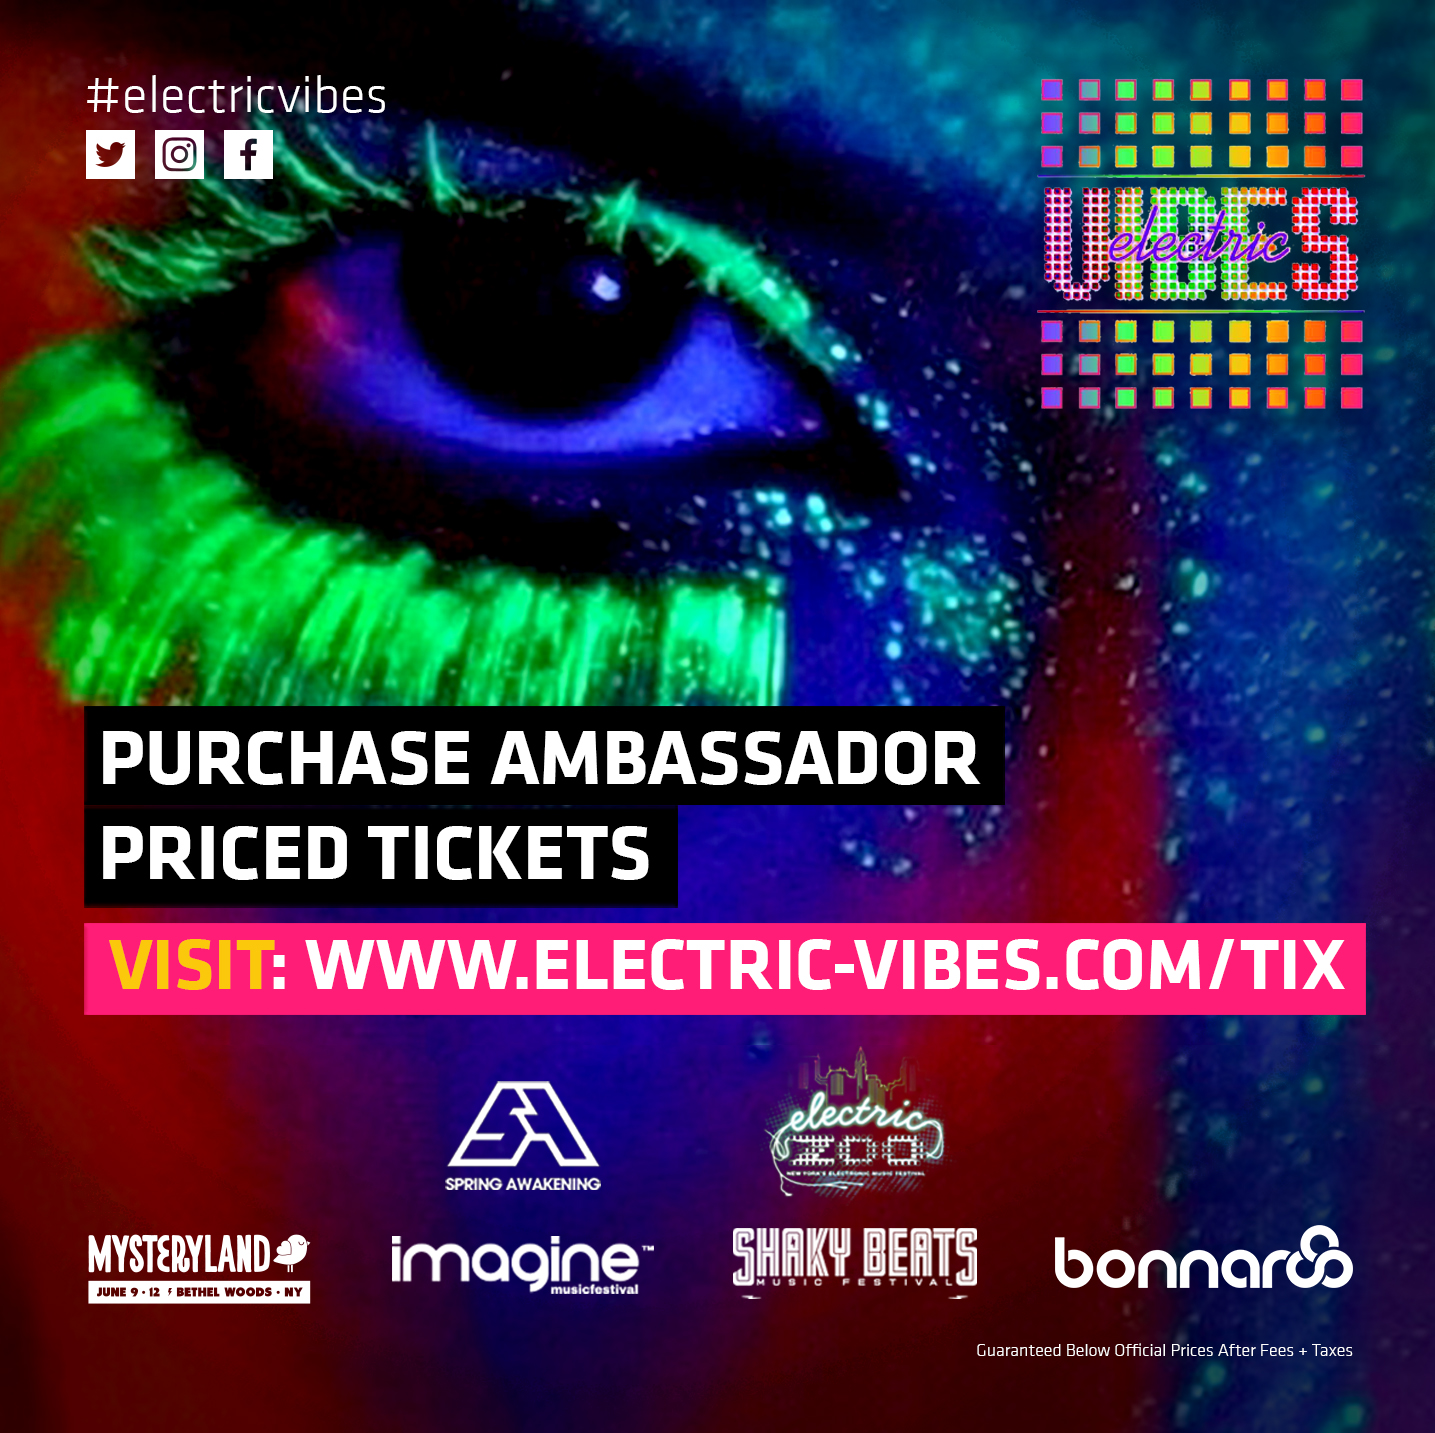 Purchase Ambassador Priced Tickets: www.Electric-Vibes.com/ezoo